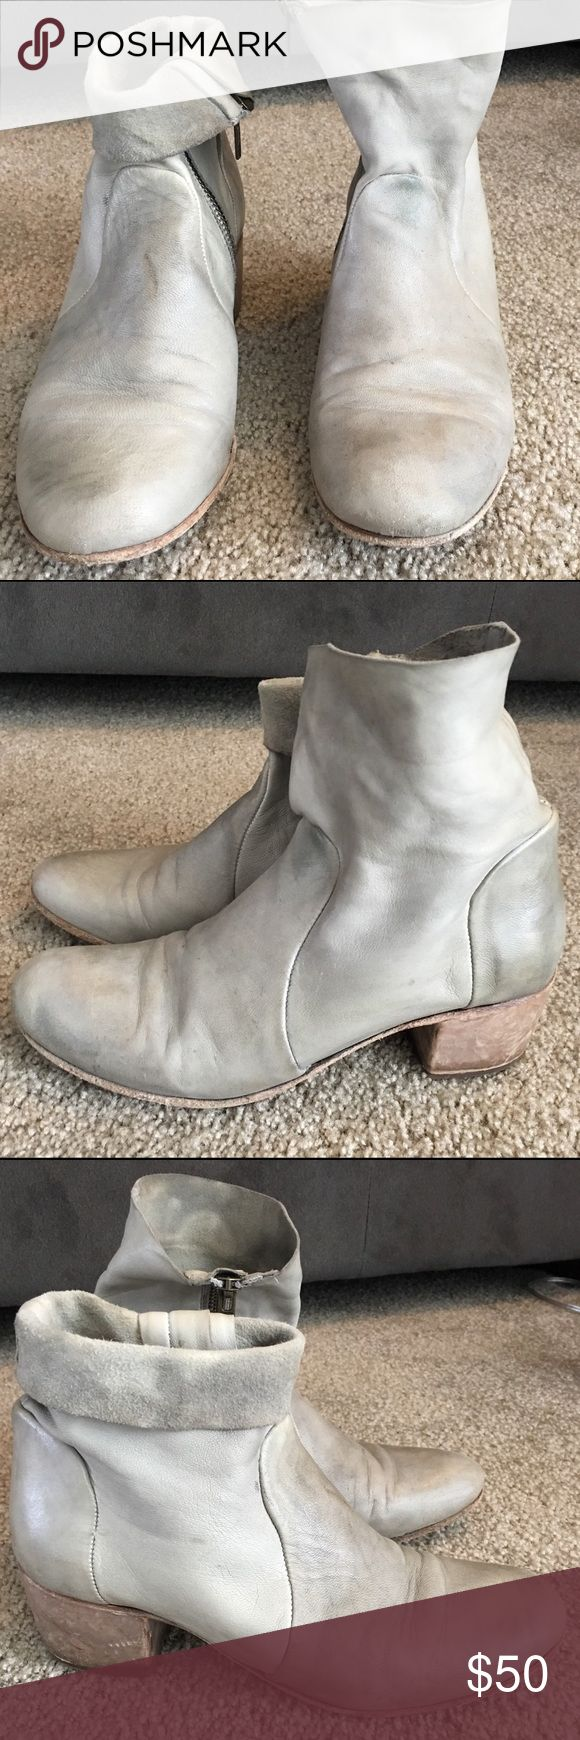 Free People grey leather boots These boots are amazing! I bought them too big and wanted to make them work but they just don't fit right! They are super soft and can be folded down or worn straight up. They are naturally worn looking so you don't have to be afraid to wear them! Free People Shoes Ankle Boots & Booties